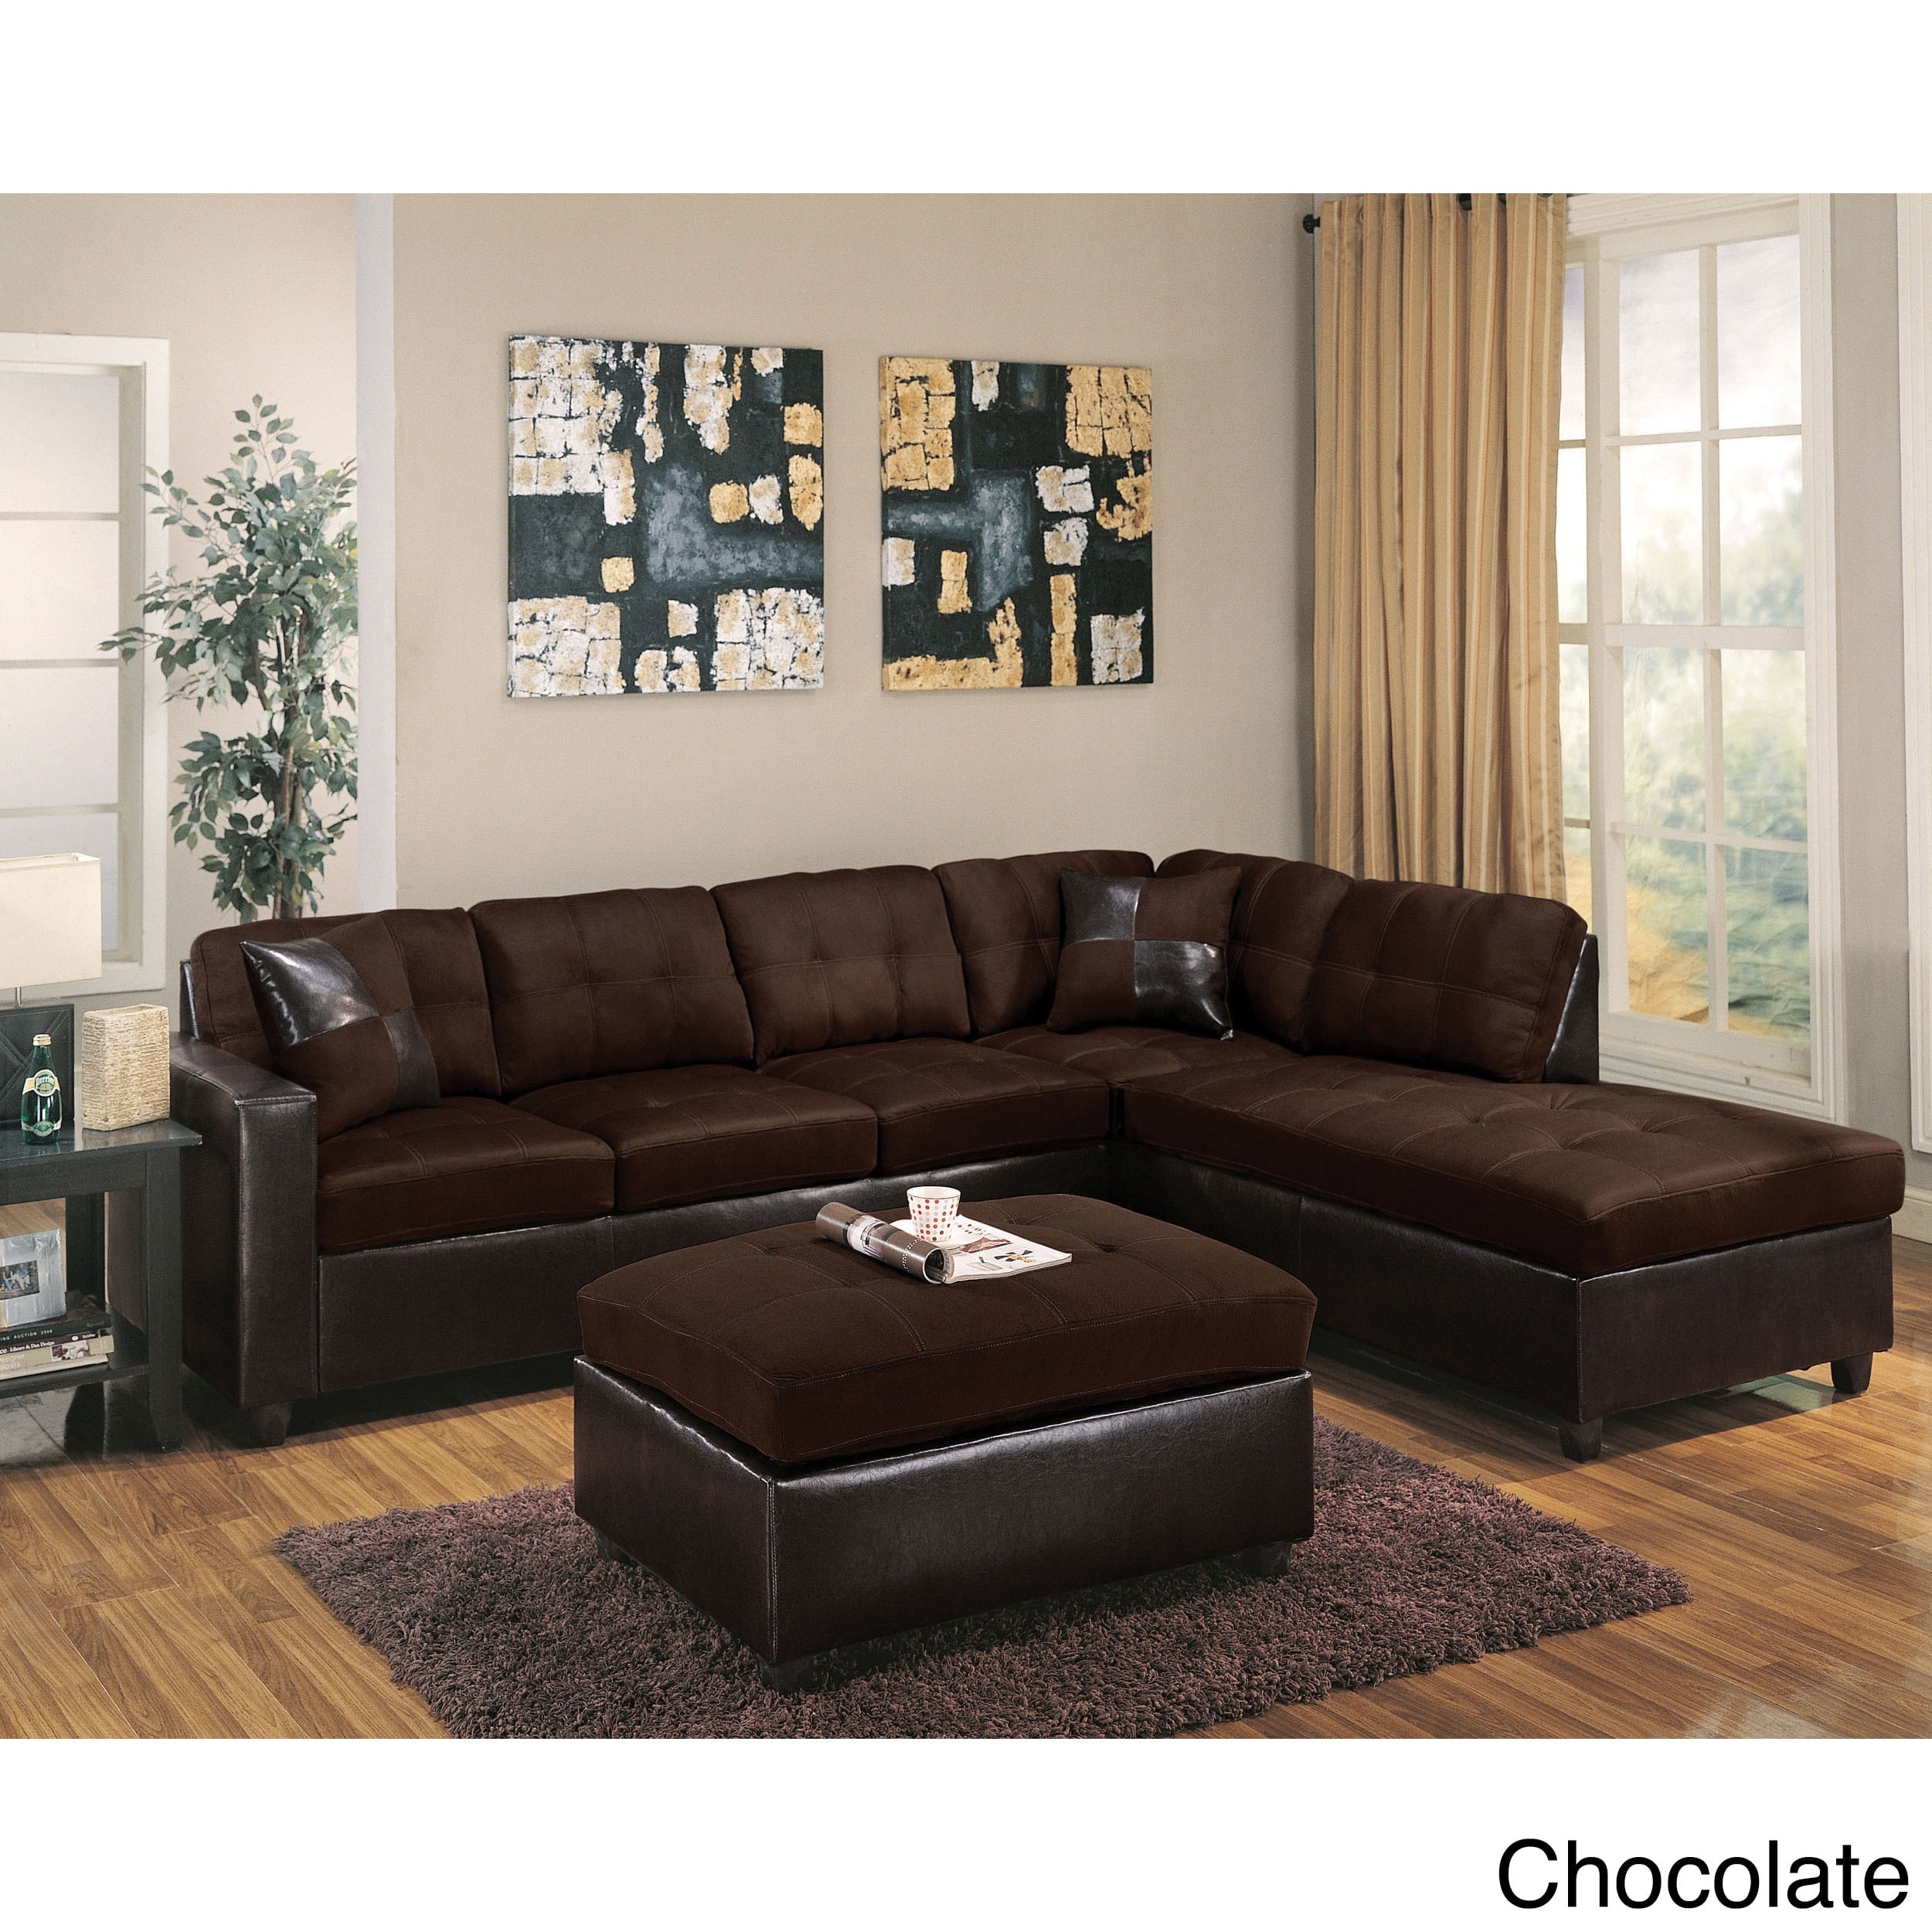 Milano Reversible Sectional Sofa In Chocolate Easy Rider And for Chocolate Sectional Sofas (Image 10 of 15)